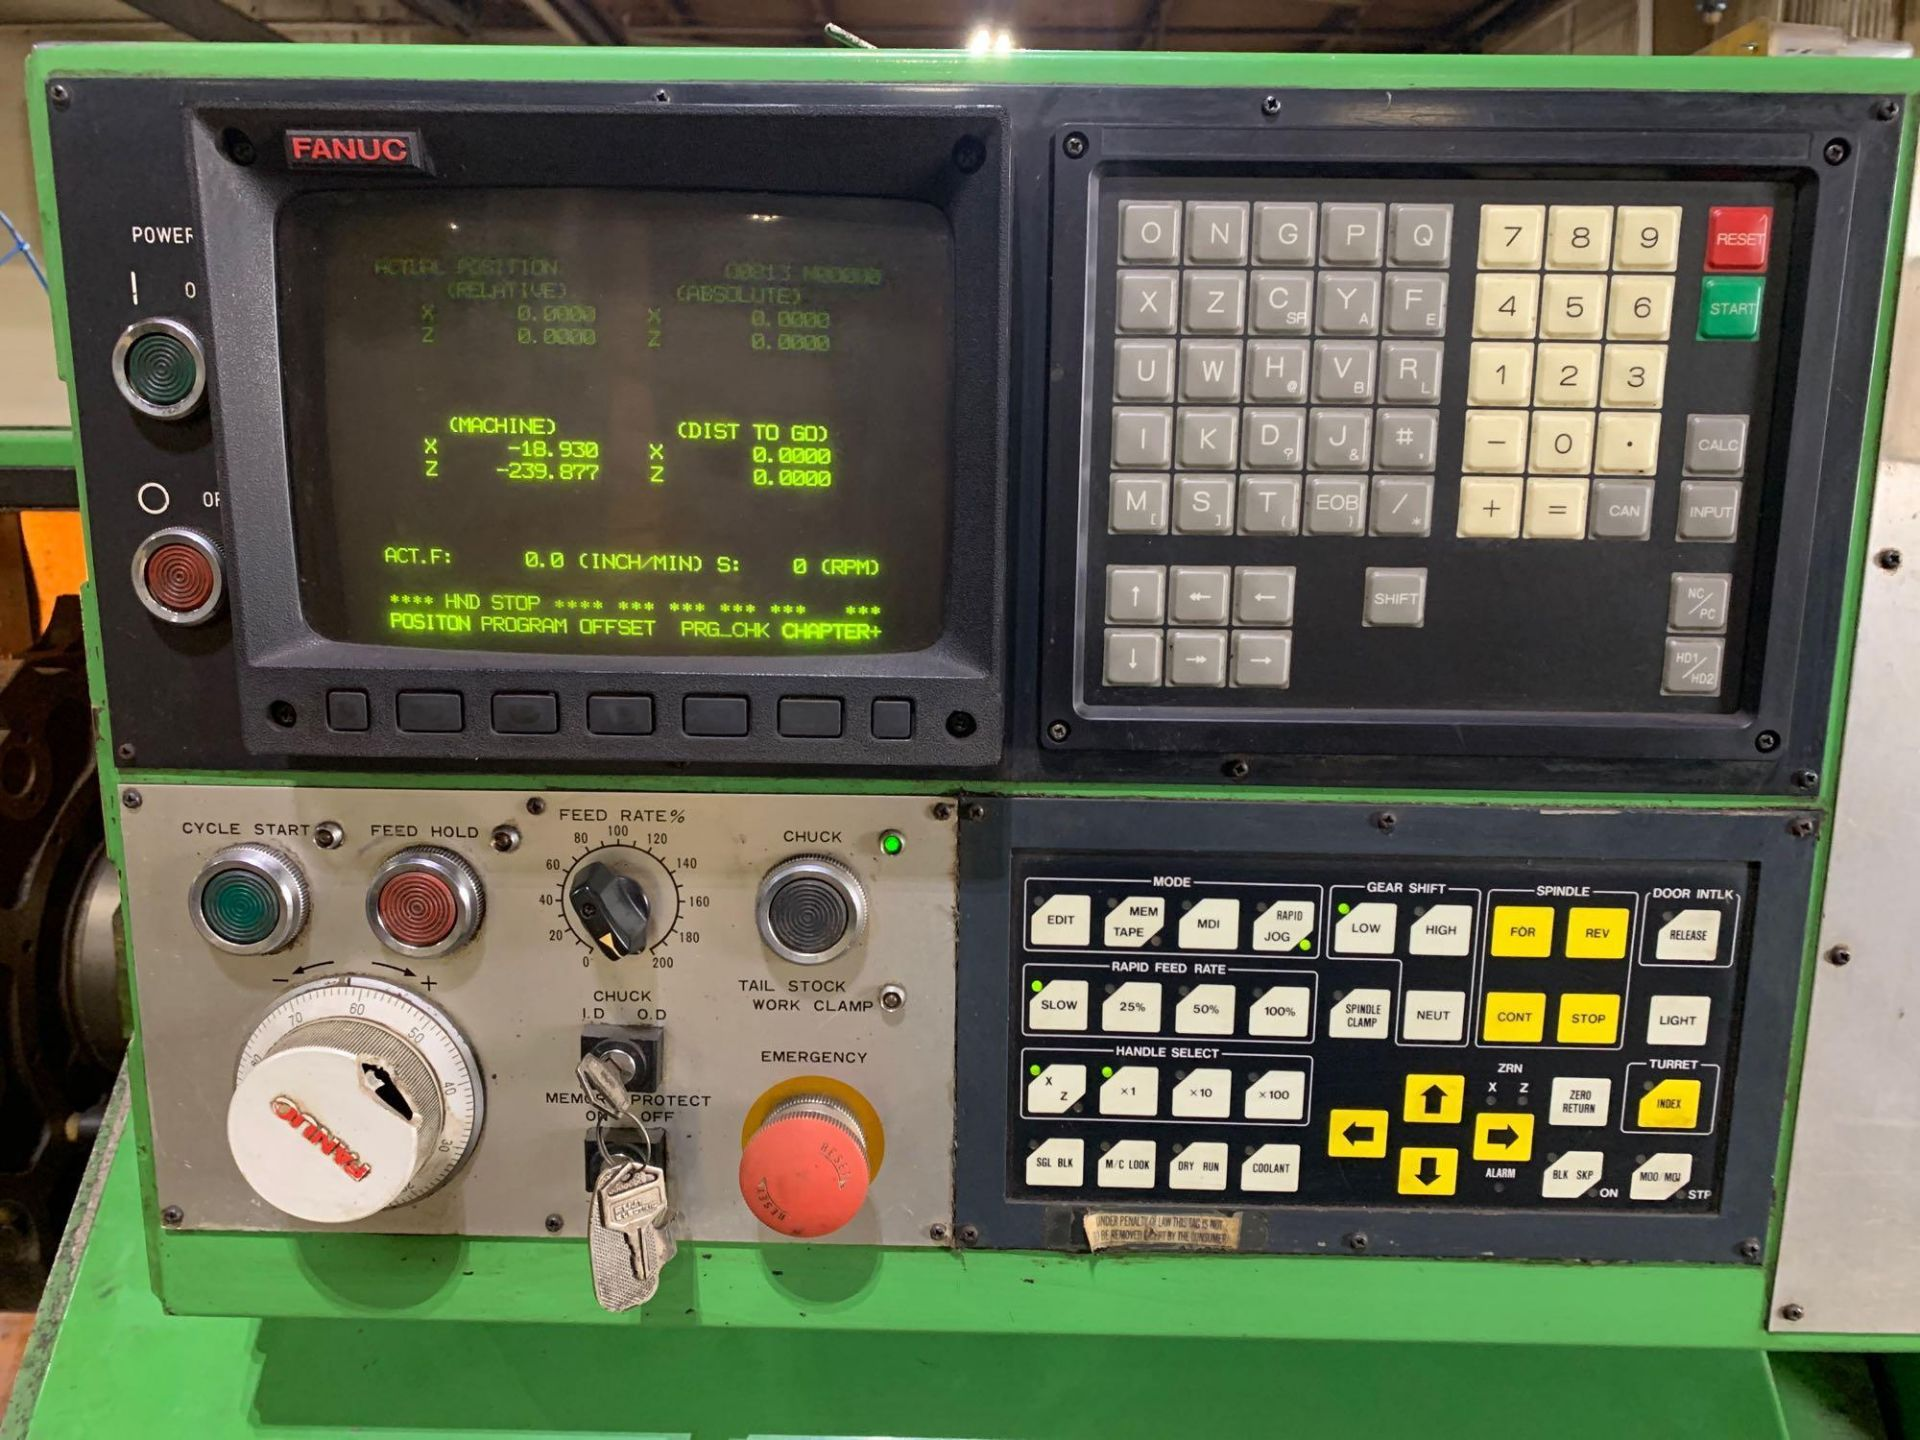 IKEGAI AX-15Z CNC Slant Bed Turning Center Serial Number: 50130V 2-Axis Machine Fanuc 10T Control 12 - Image 7 of 18